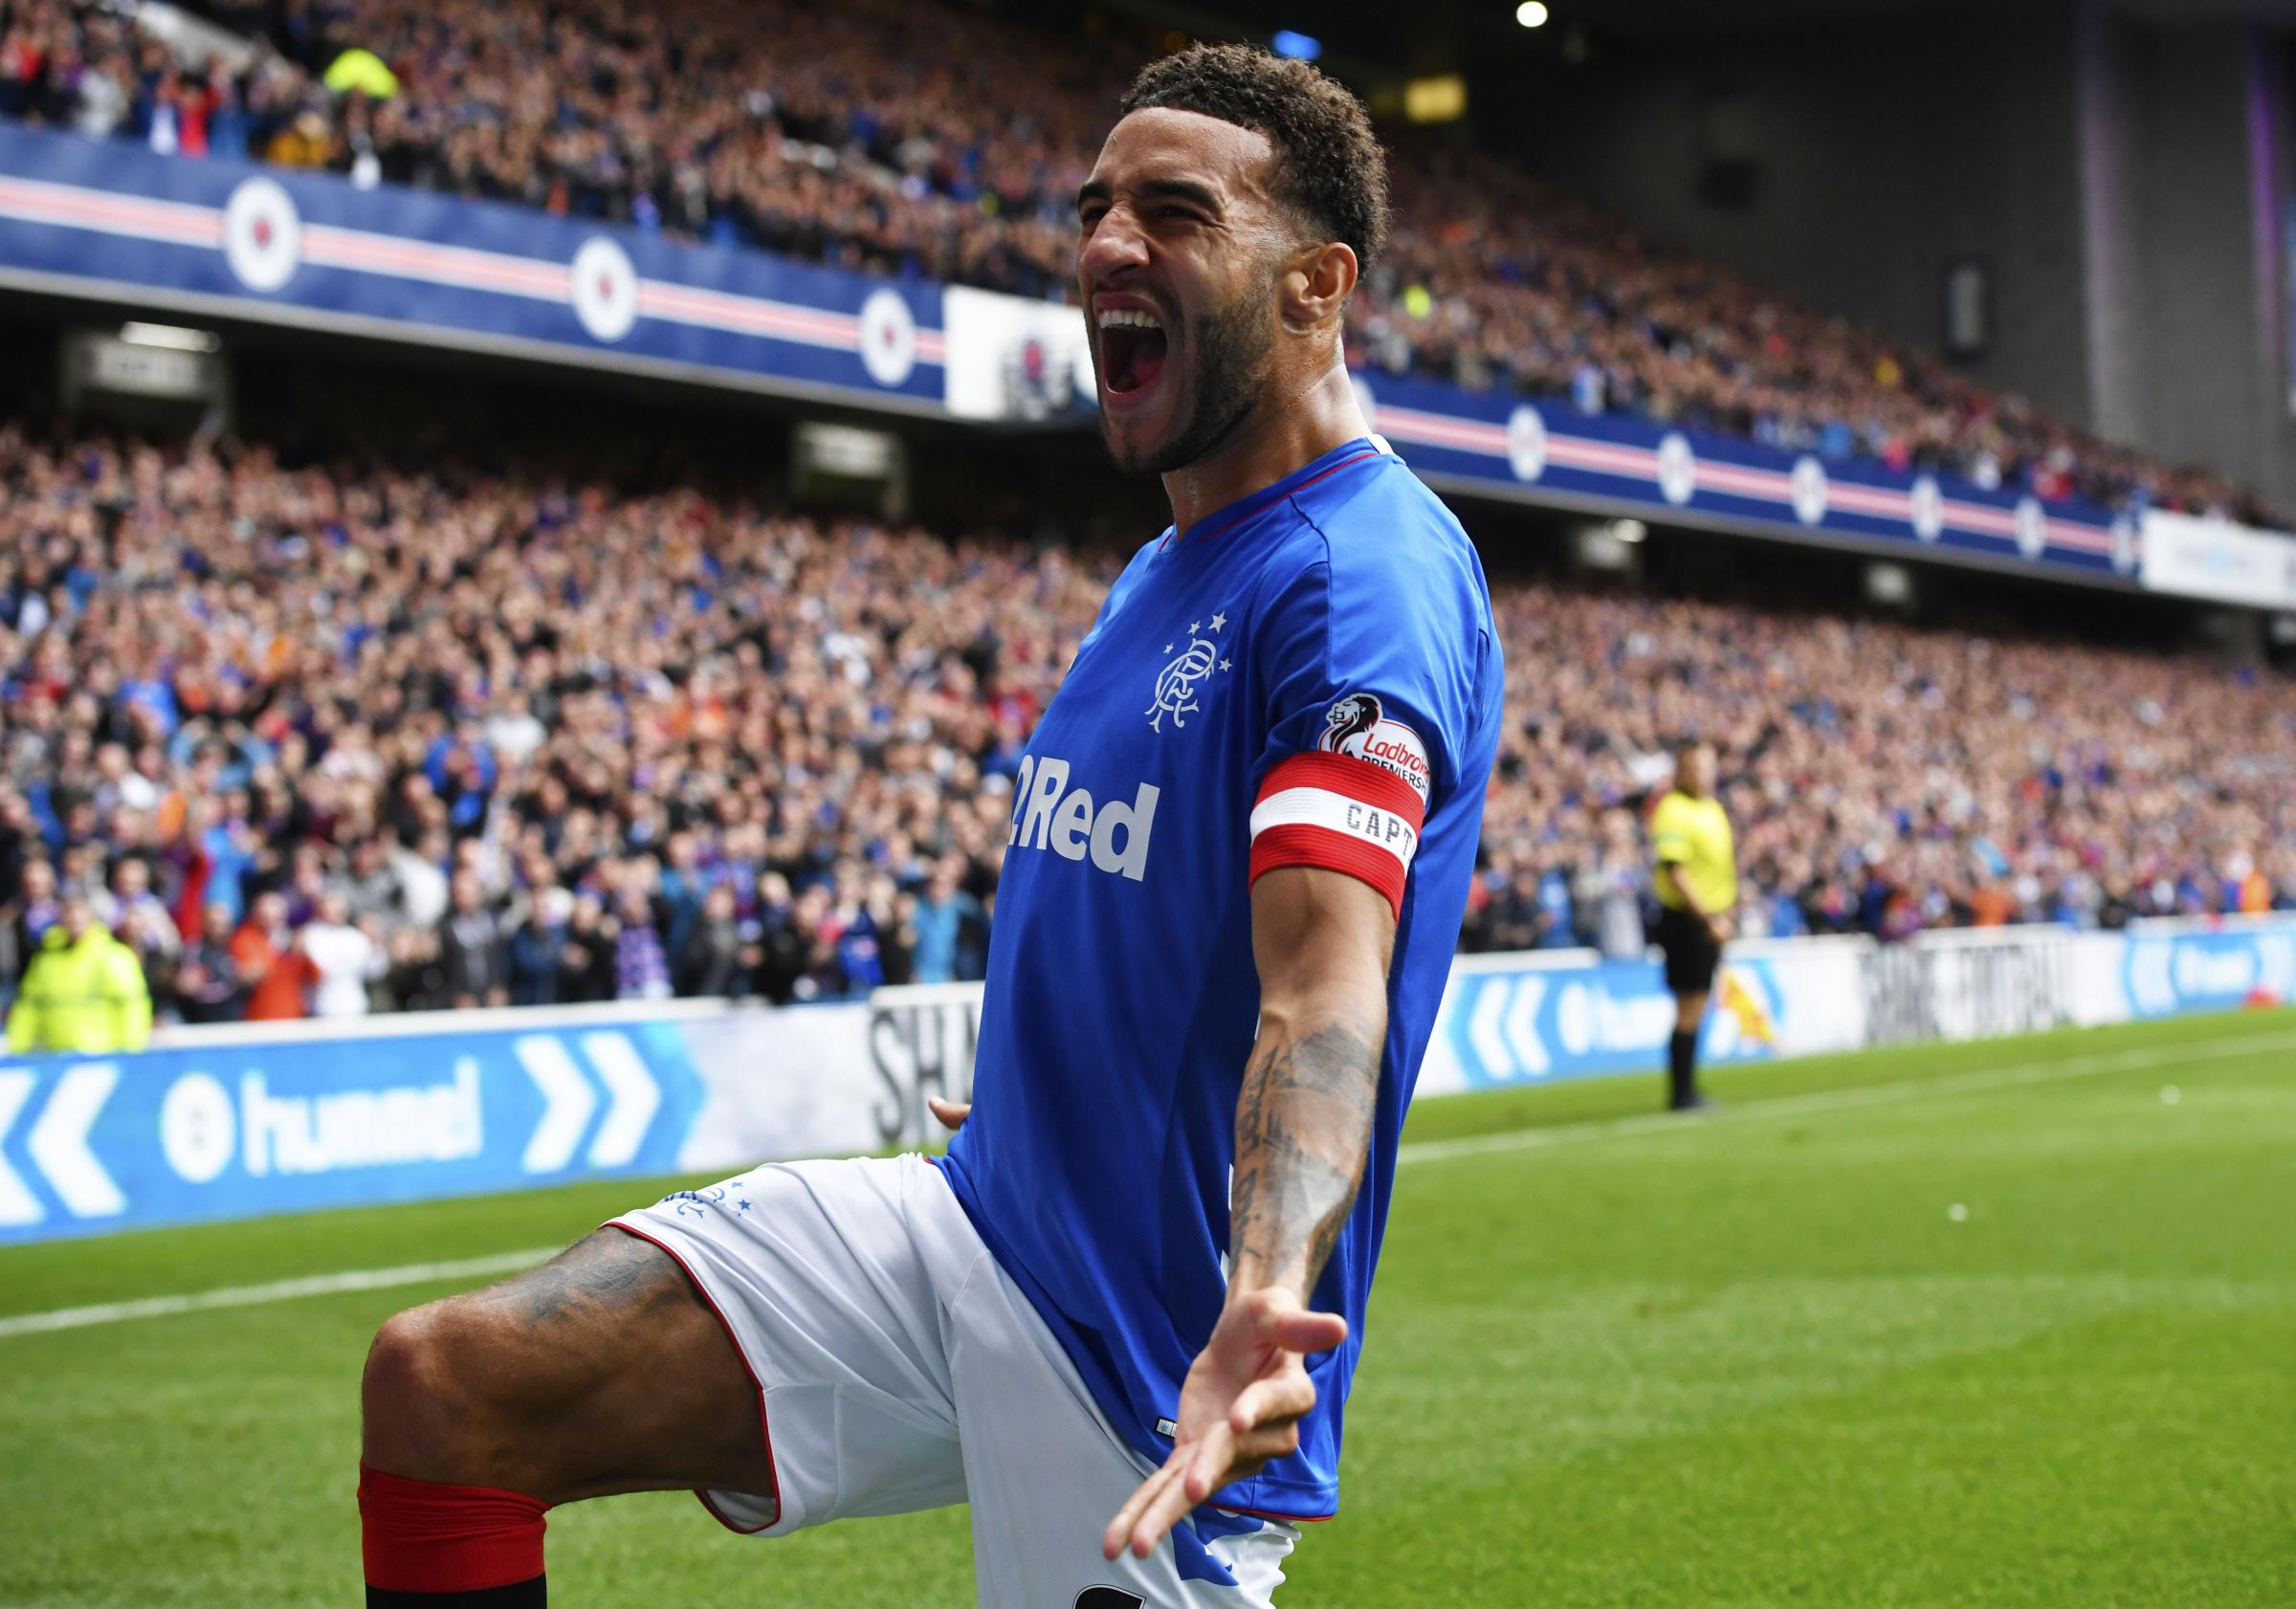 Rangers boss Steven Gerrard pleased to see Connor Goldson leading by example at Ibrox | HeraldScotland